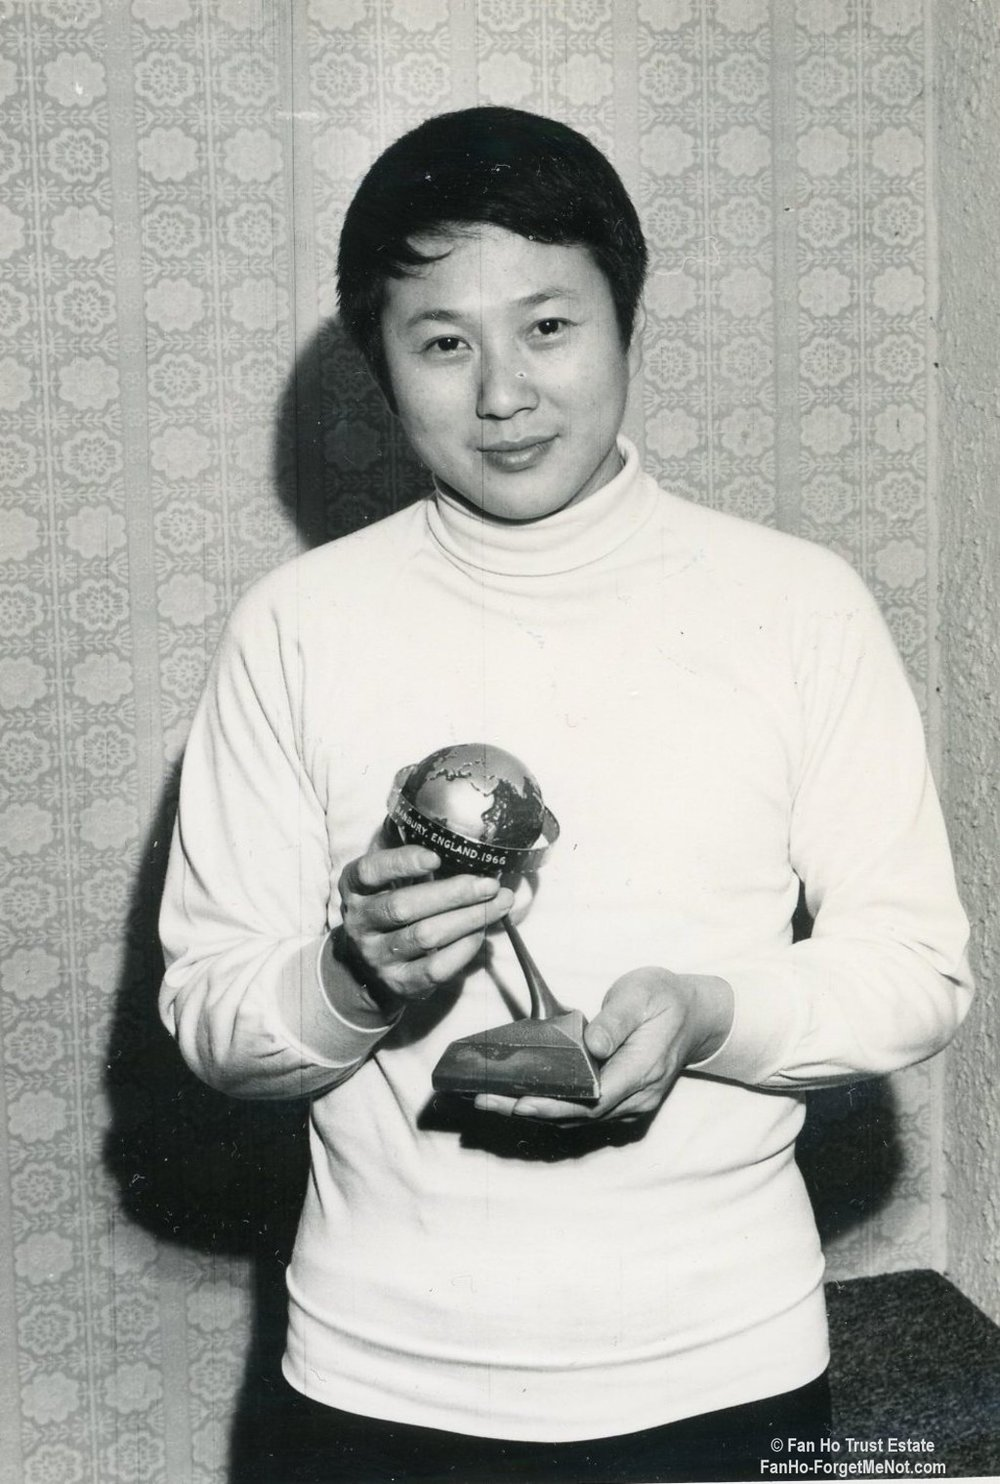 Fan Ho with the trophy